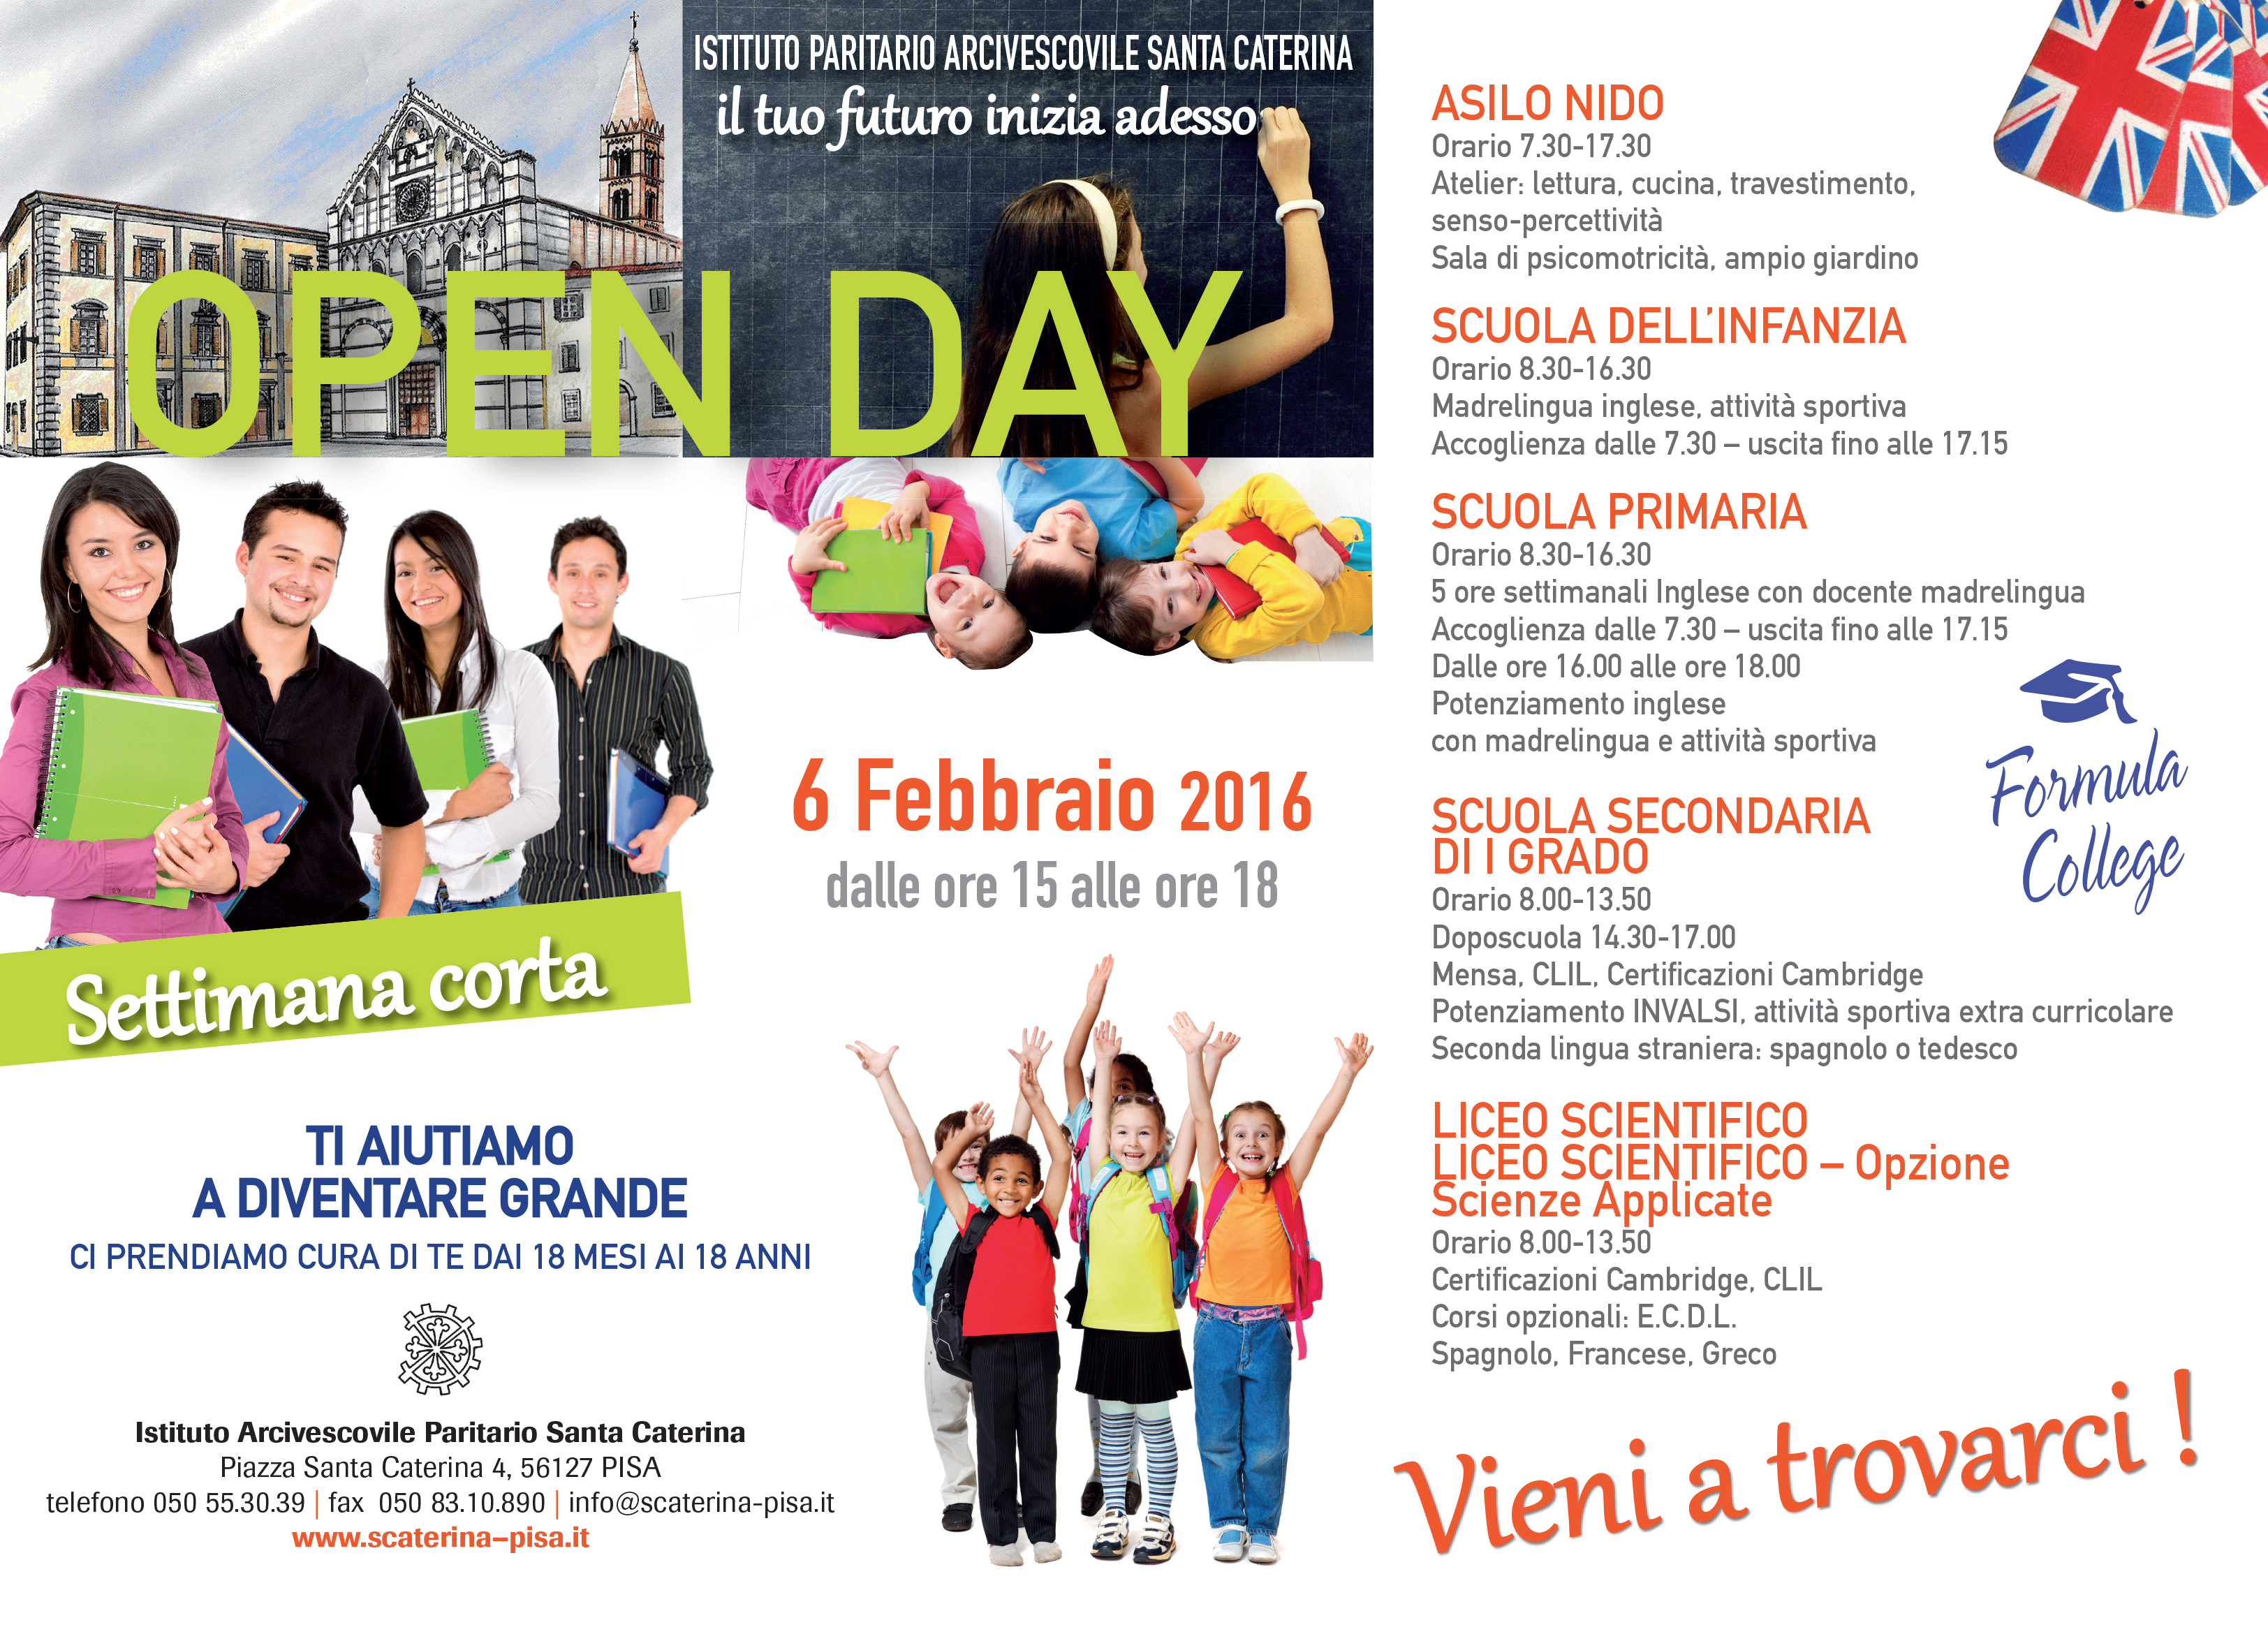 PAGINA QUOTIDIANI OPEN DAY 275x197.indd